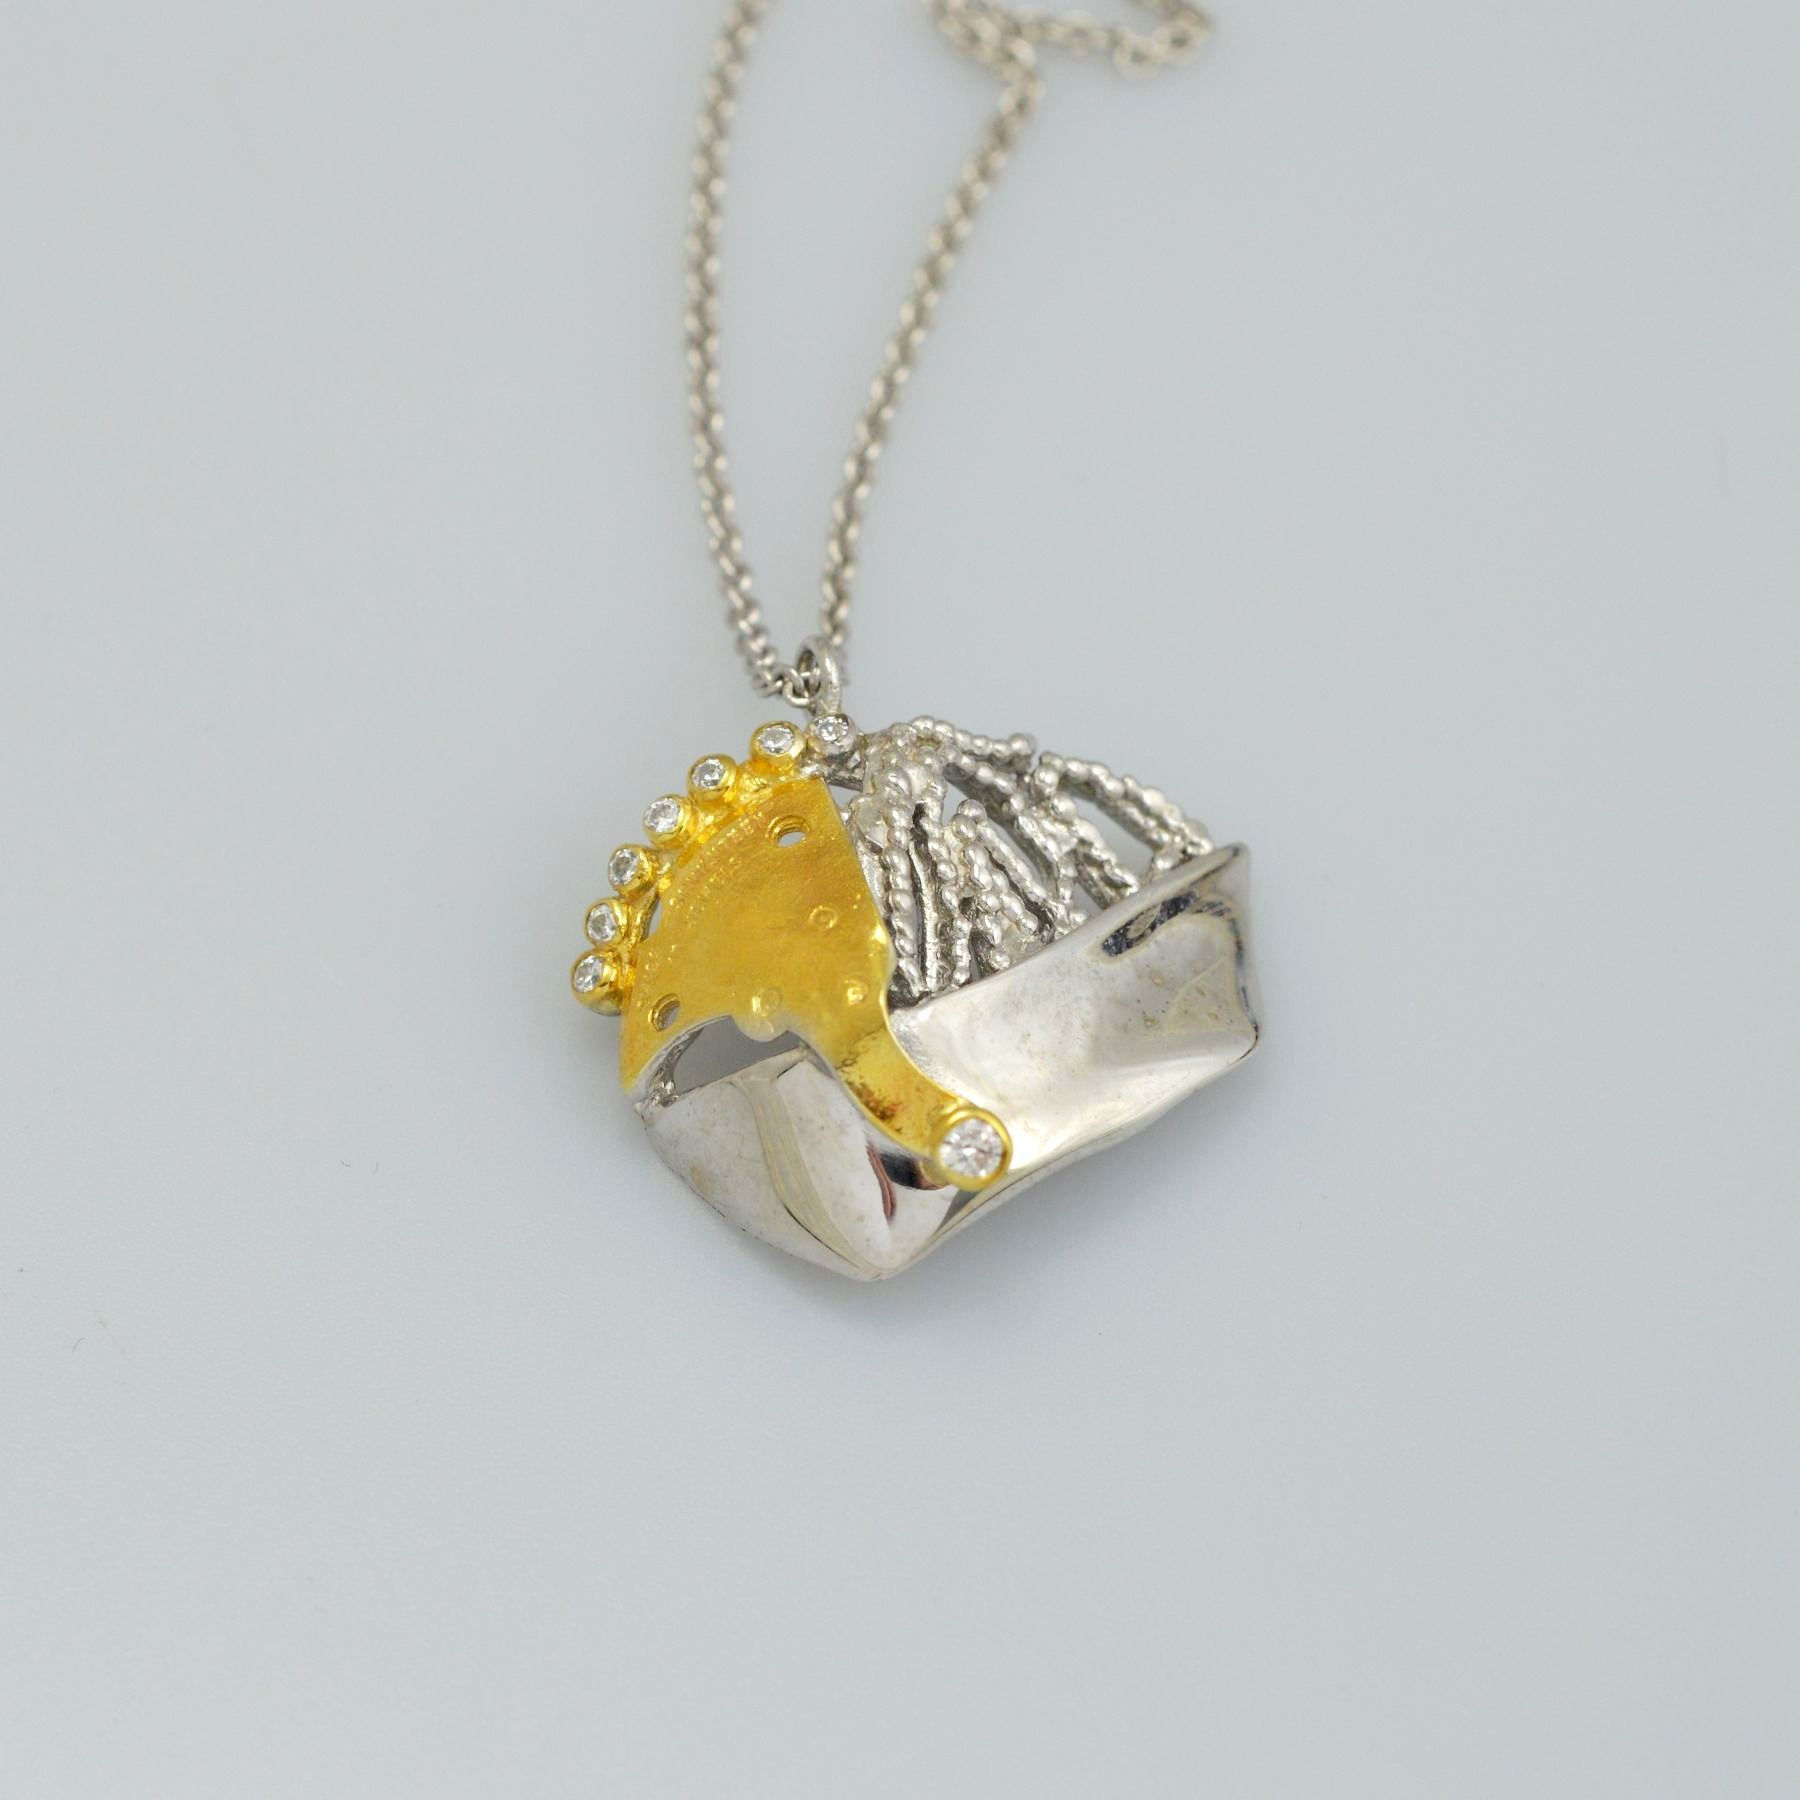 Silver pendant 925 rhodium and gold plated with synthetic stones